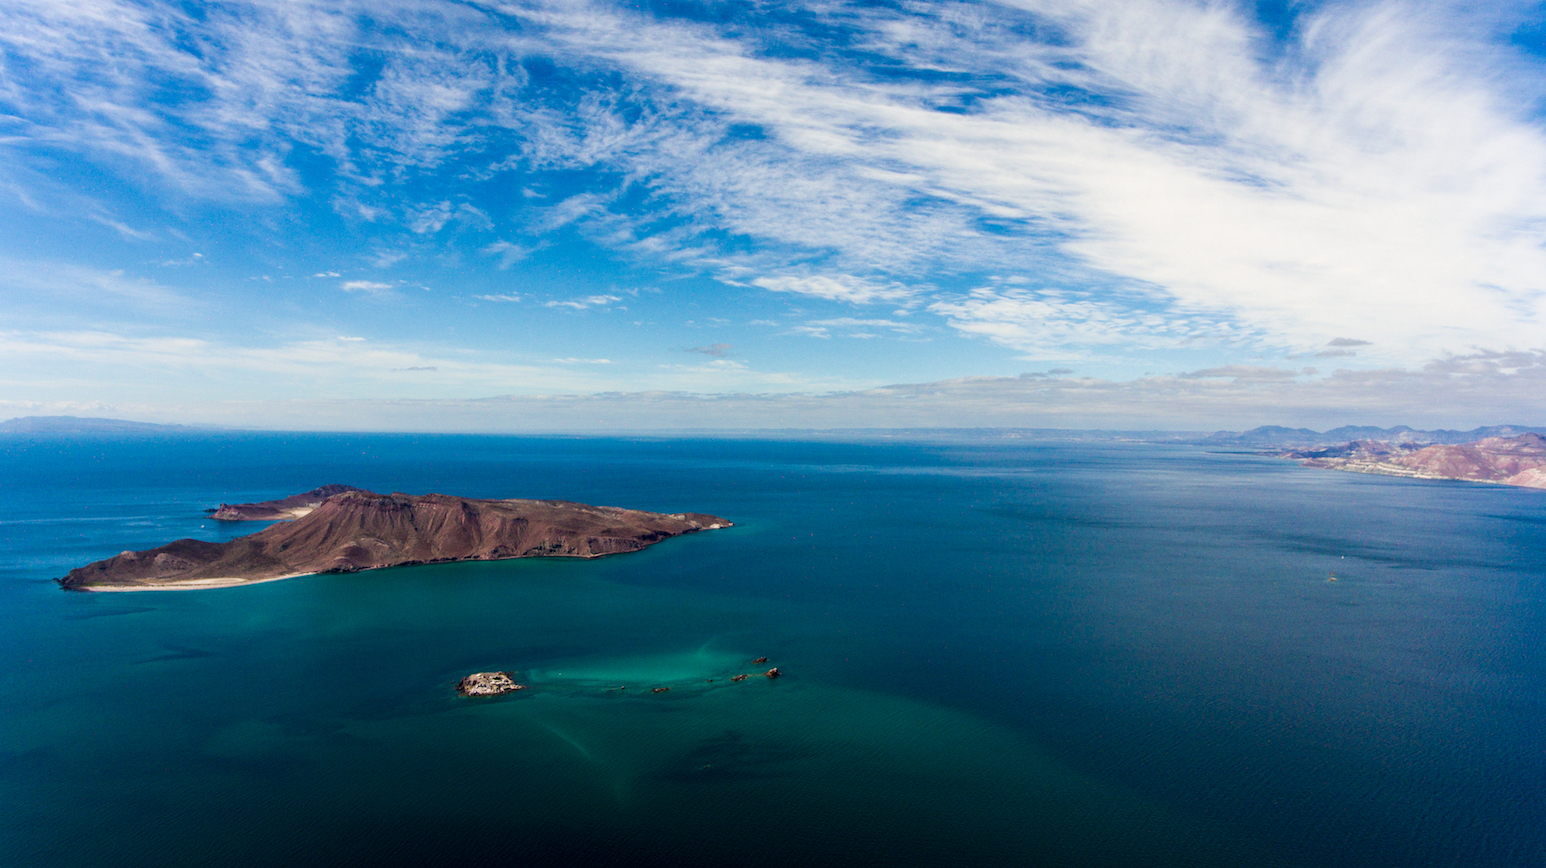 An isthmus of water cutting a sliver of land from the main body of Mexico; the Sea of Cortez, otherwise known as the Gulf of California, holds more mystique in my mind than most marine waters.